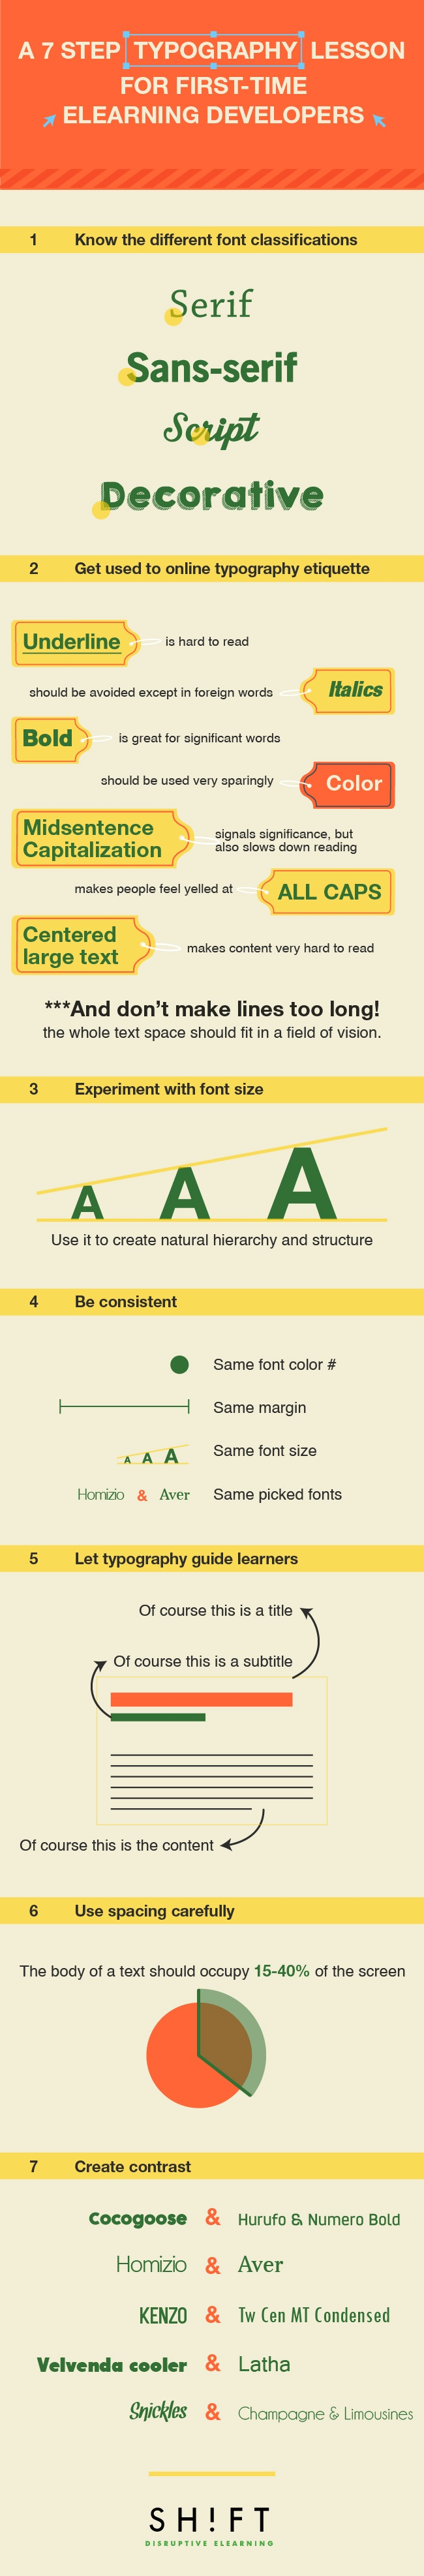 A Typography Lesson for eLearning Developers Infographic